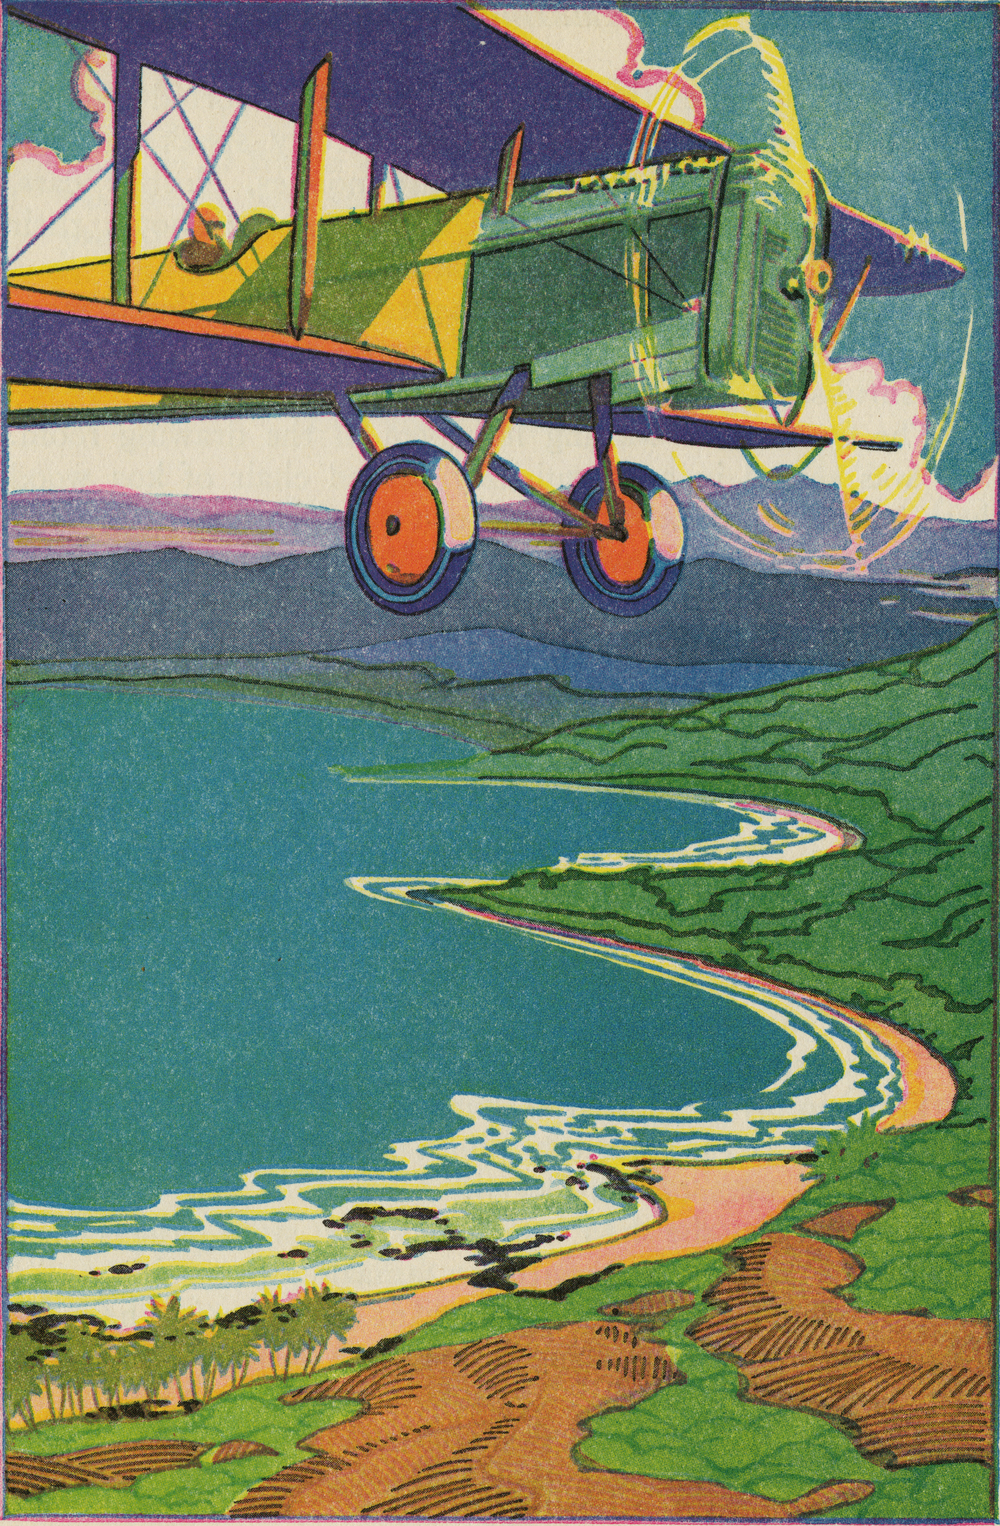 Lucille W. Holling,  Kimo: The Whistling Boy . Written by Alice Cooper Bailey.   Published   in   1928 by   The Wise-Parslow Co.